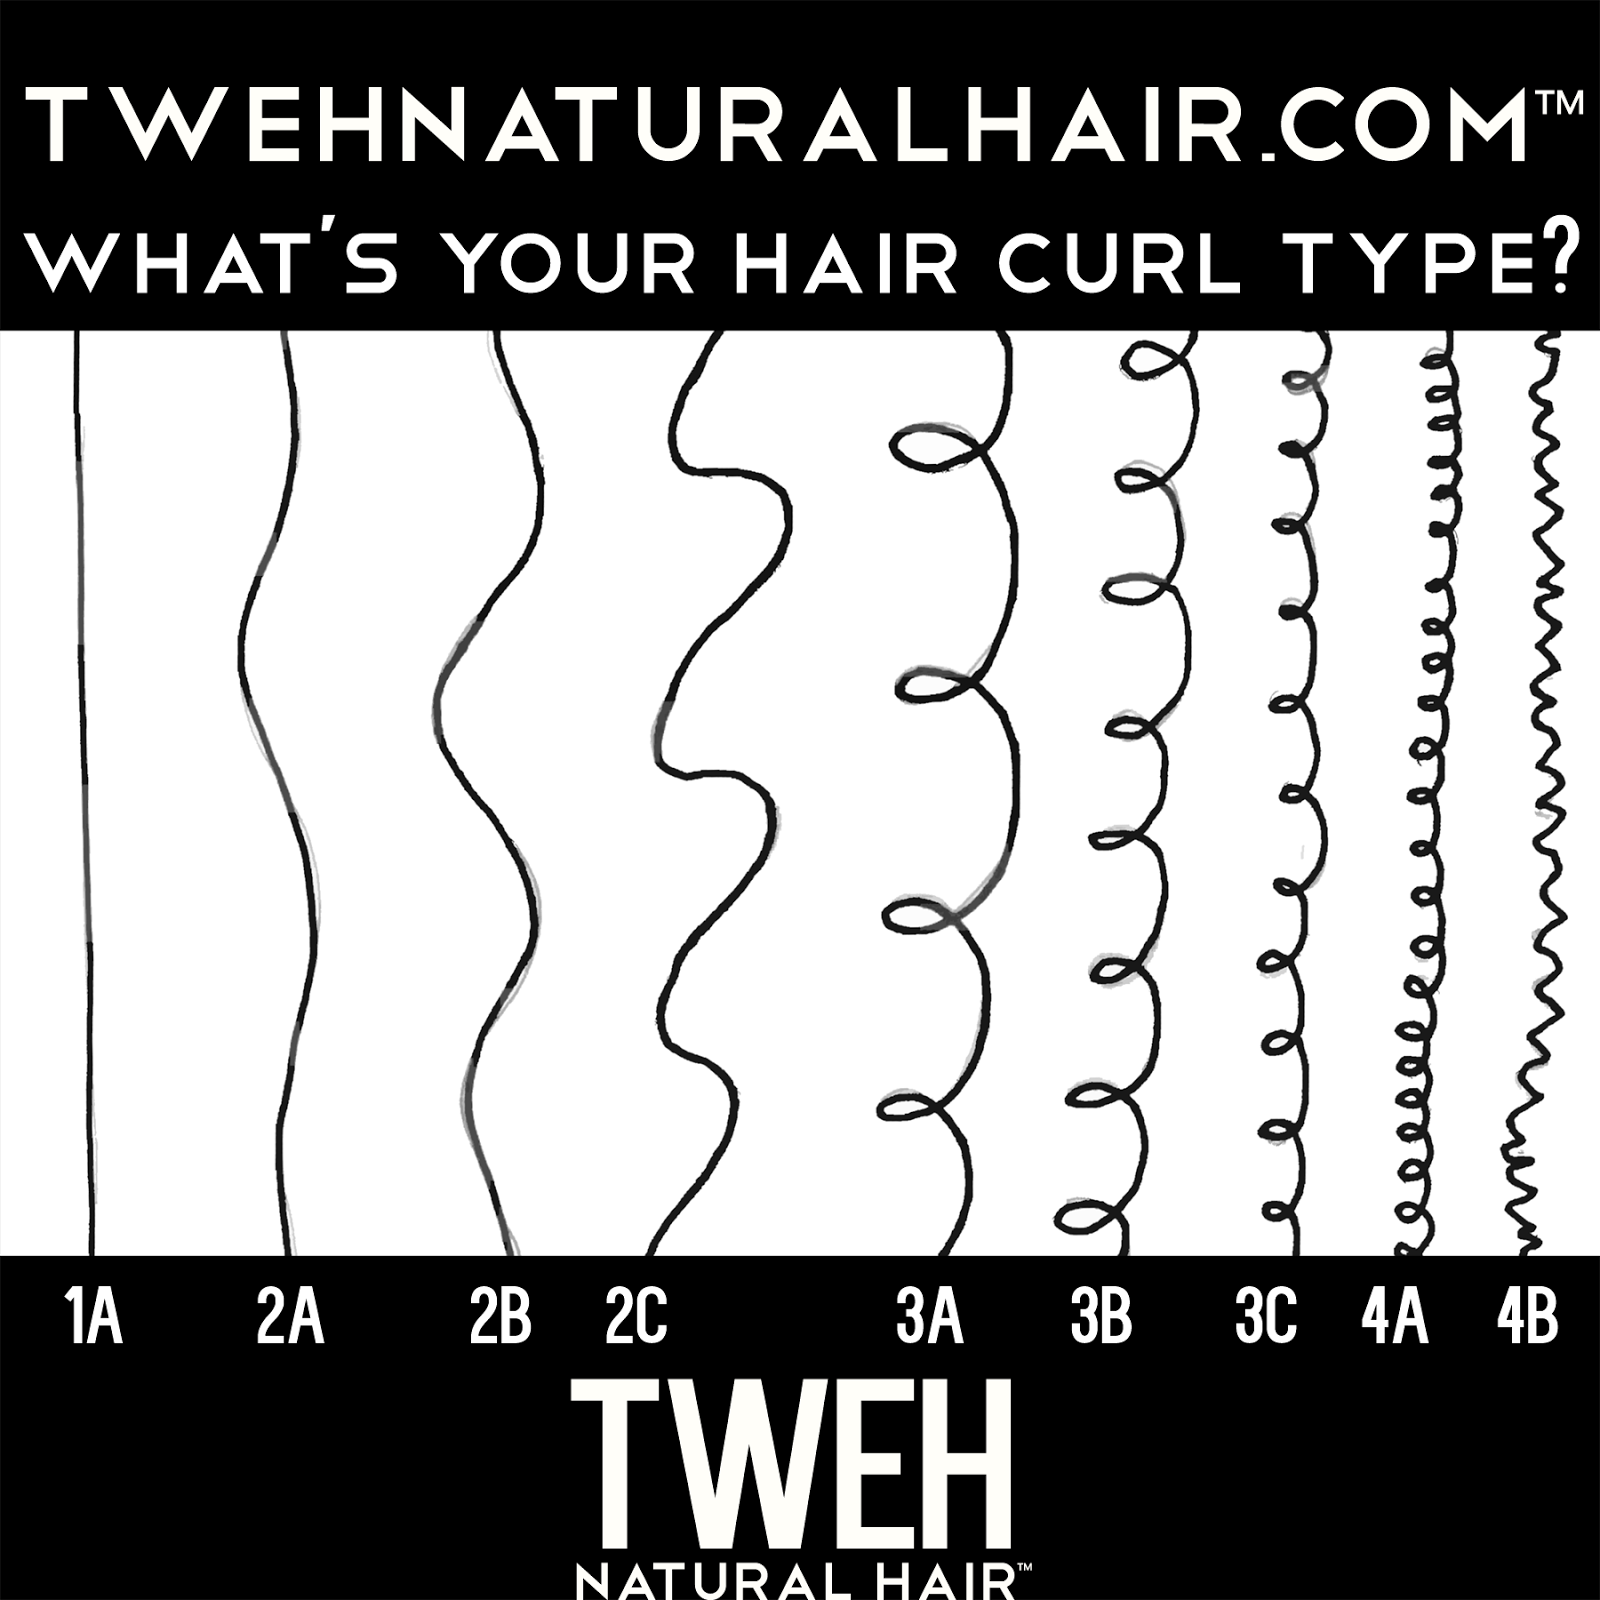 Tweh Natural Hair: New Year's Resolution...Find Your Curl